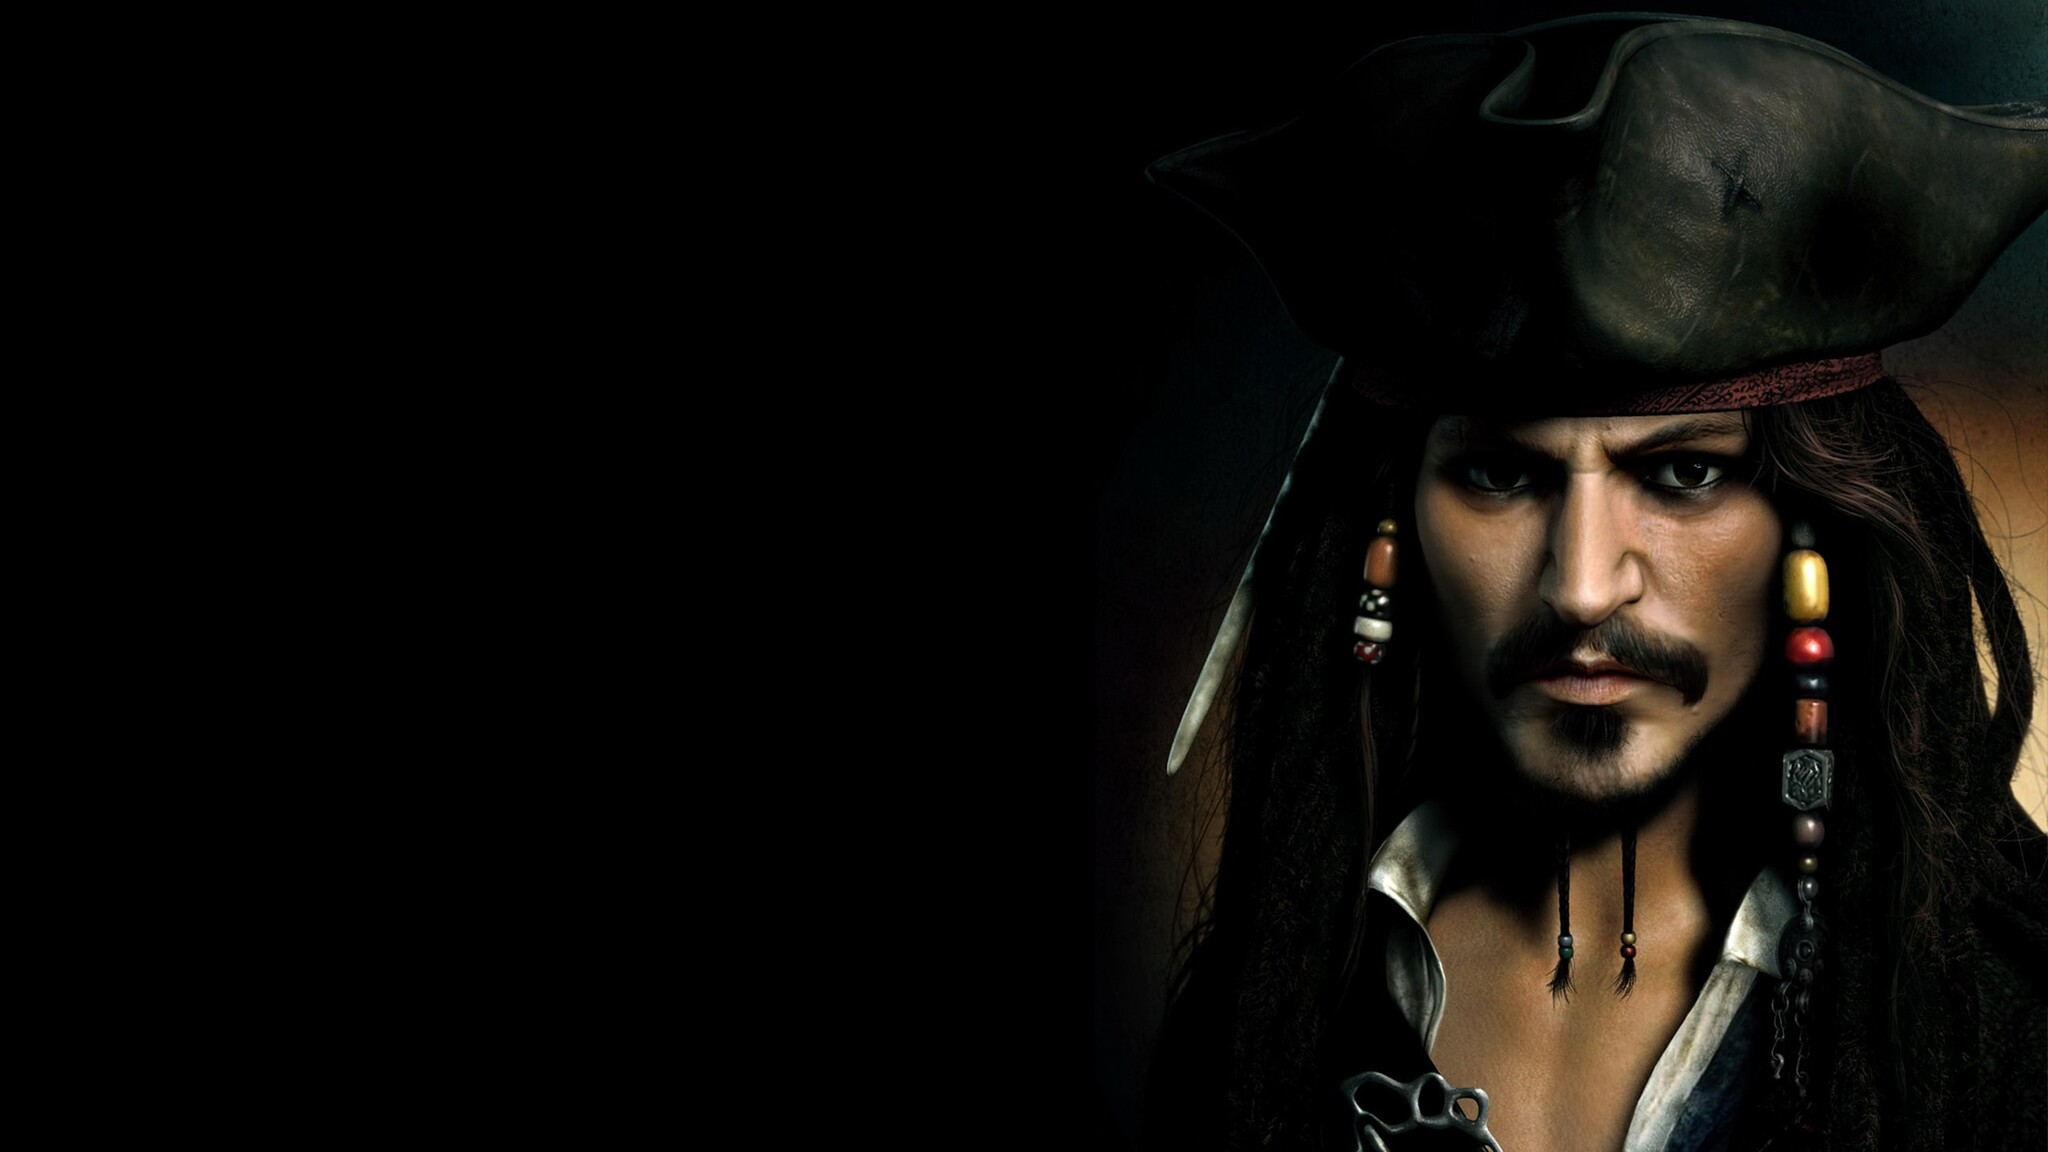 2048x1152 Jack Sparrow 2048x1152 Resolution Hd 4k Wallpapers Images